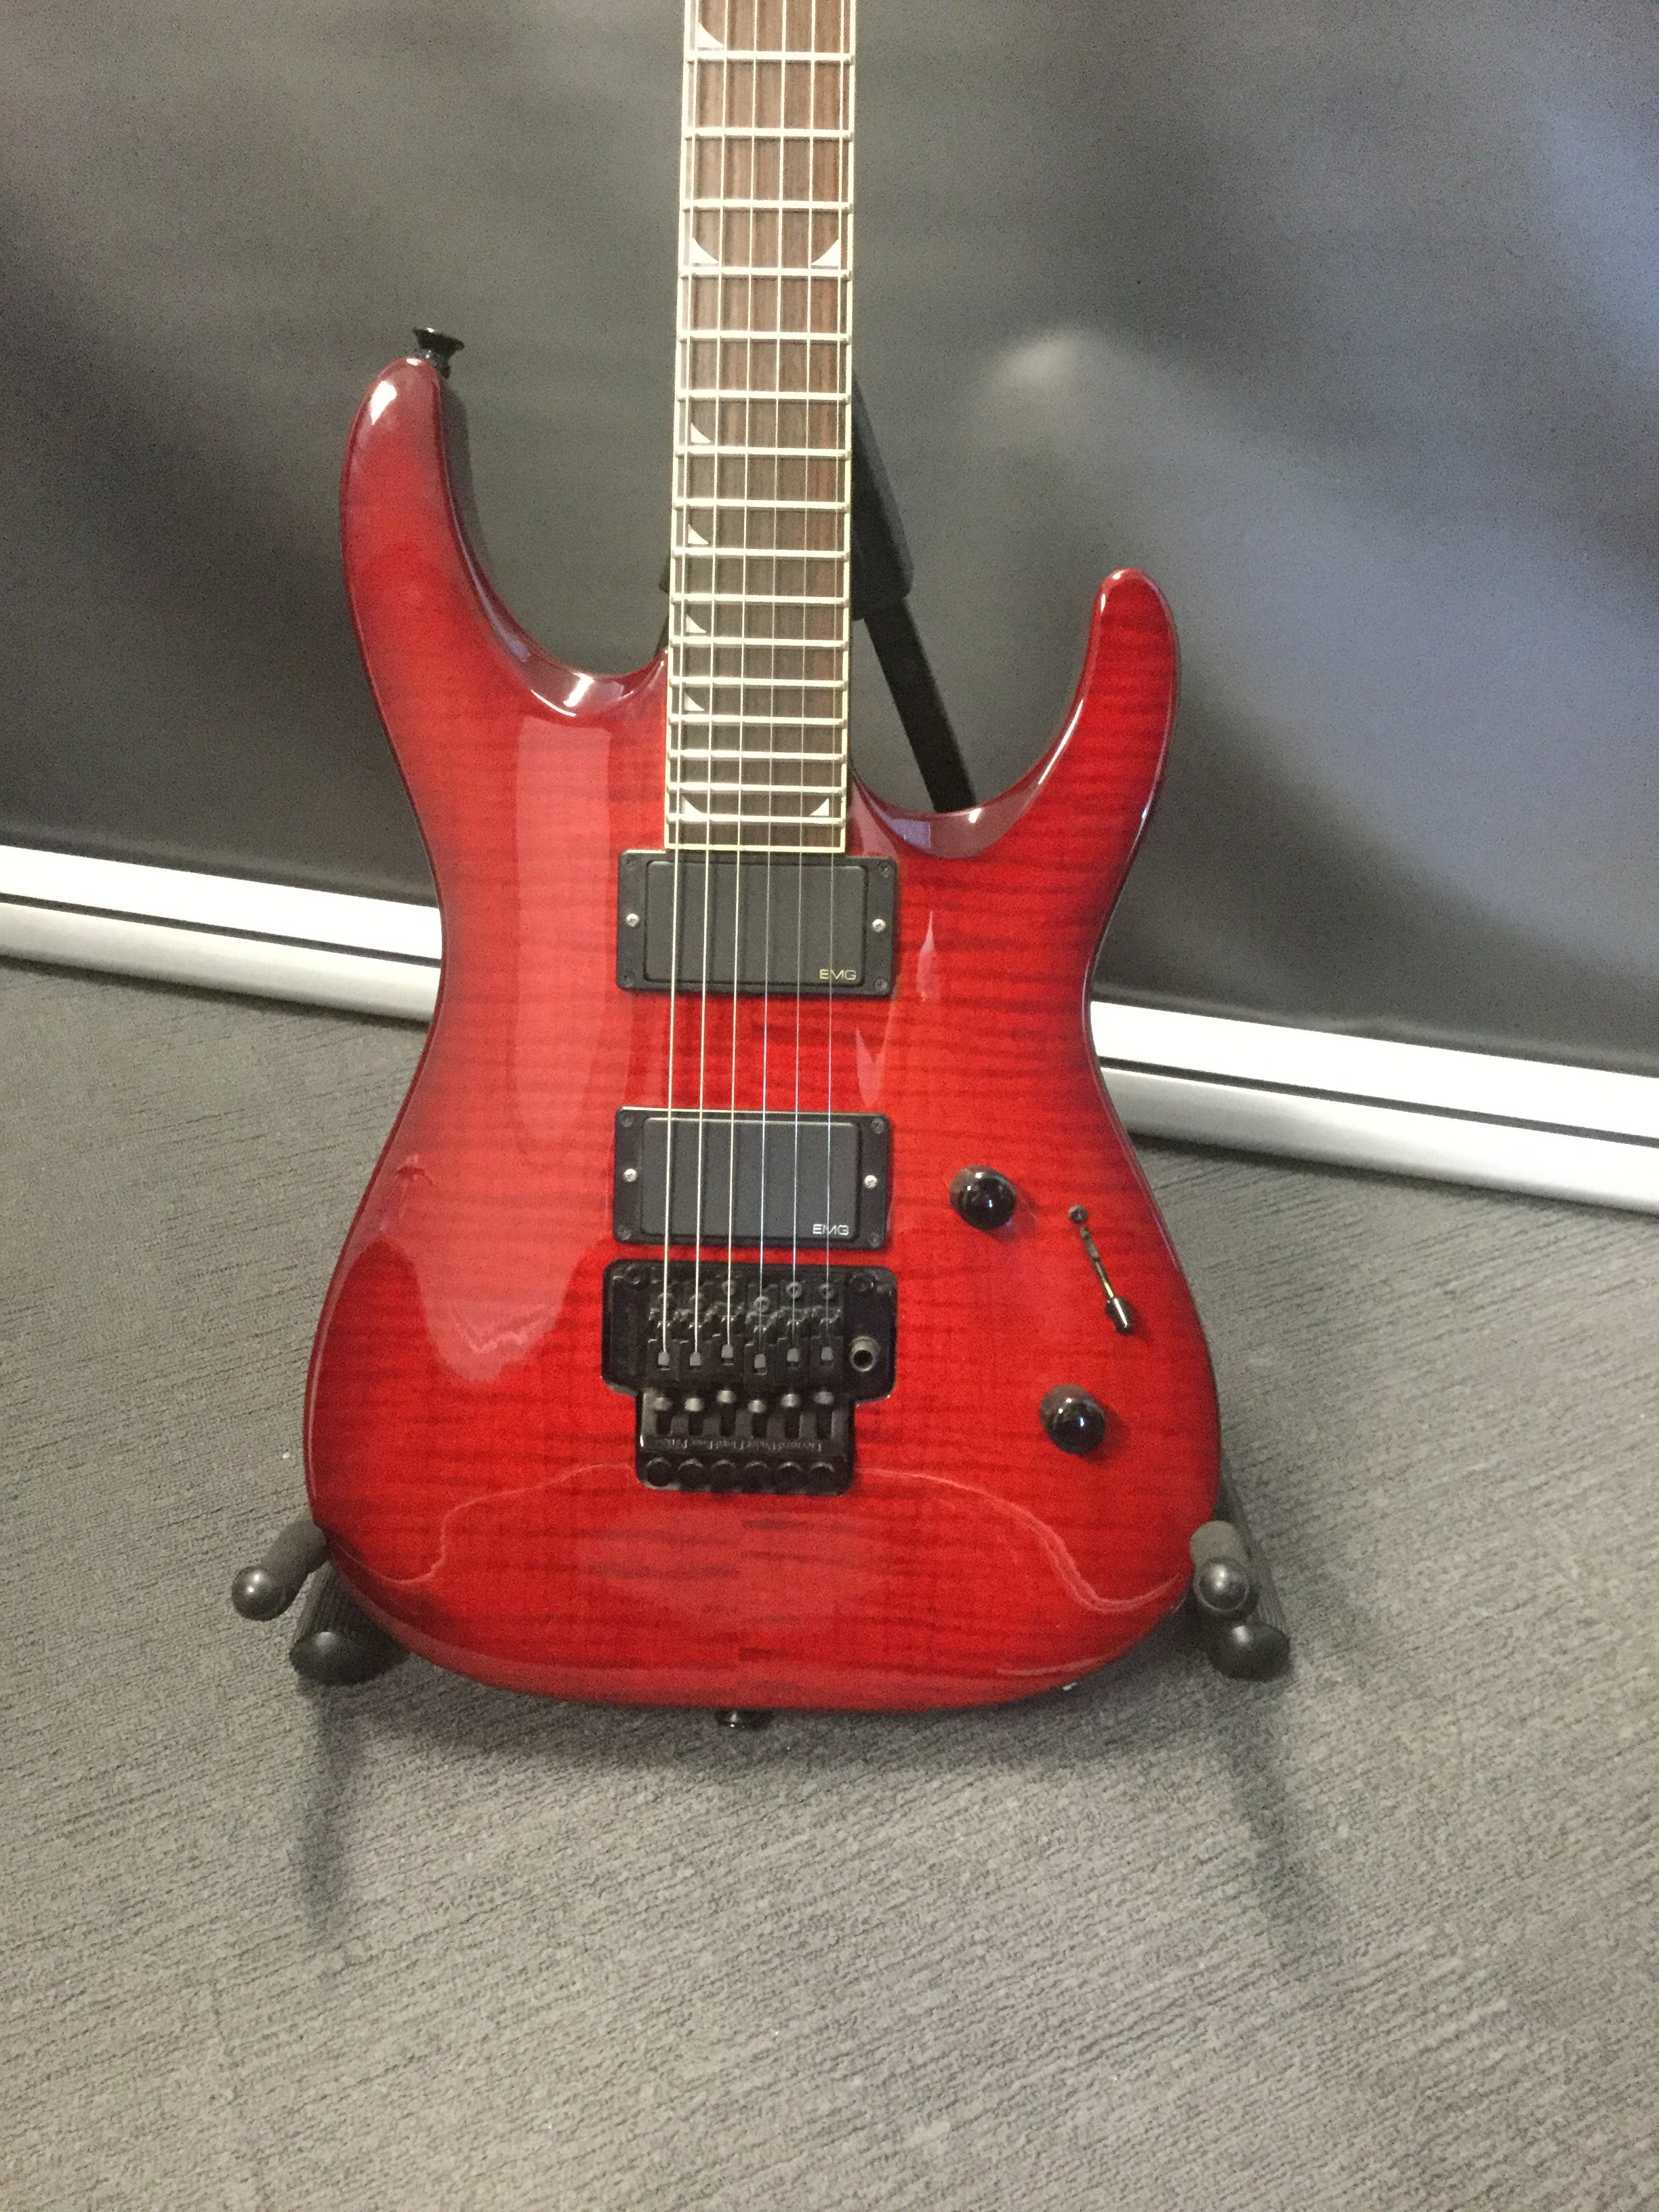 Jackson Dkmg Trans Red W Emgs No Trem Arm Case Andertons Music Co Js22 7 Wire Diagram